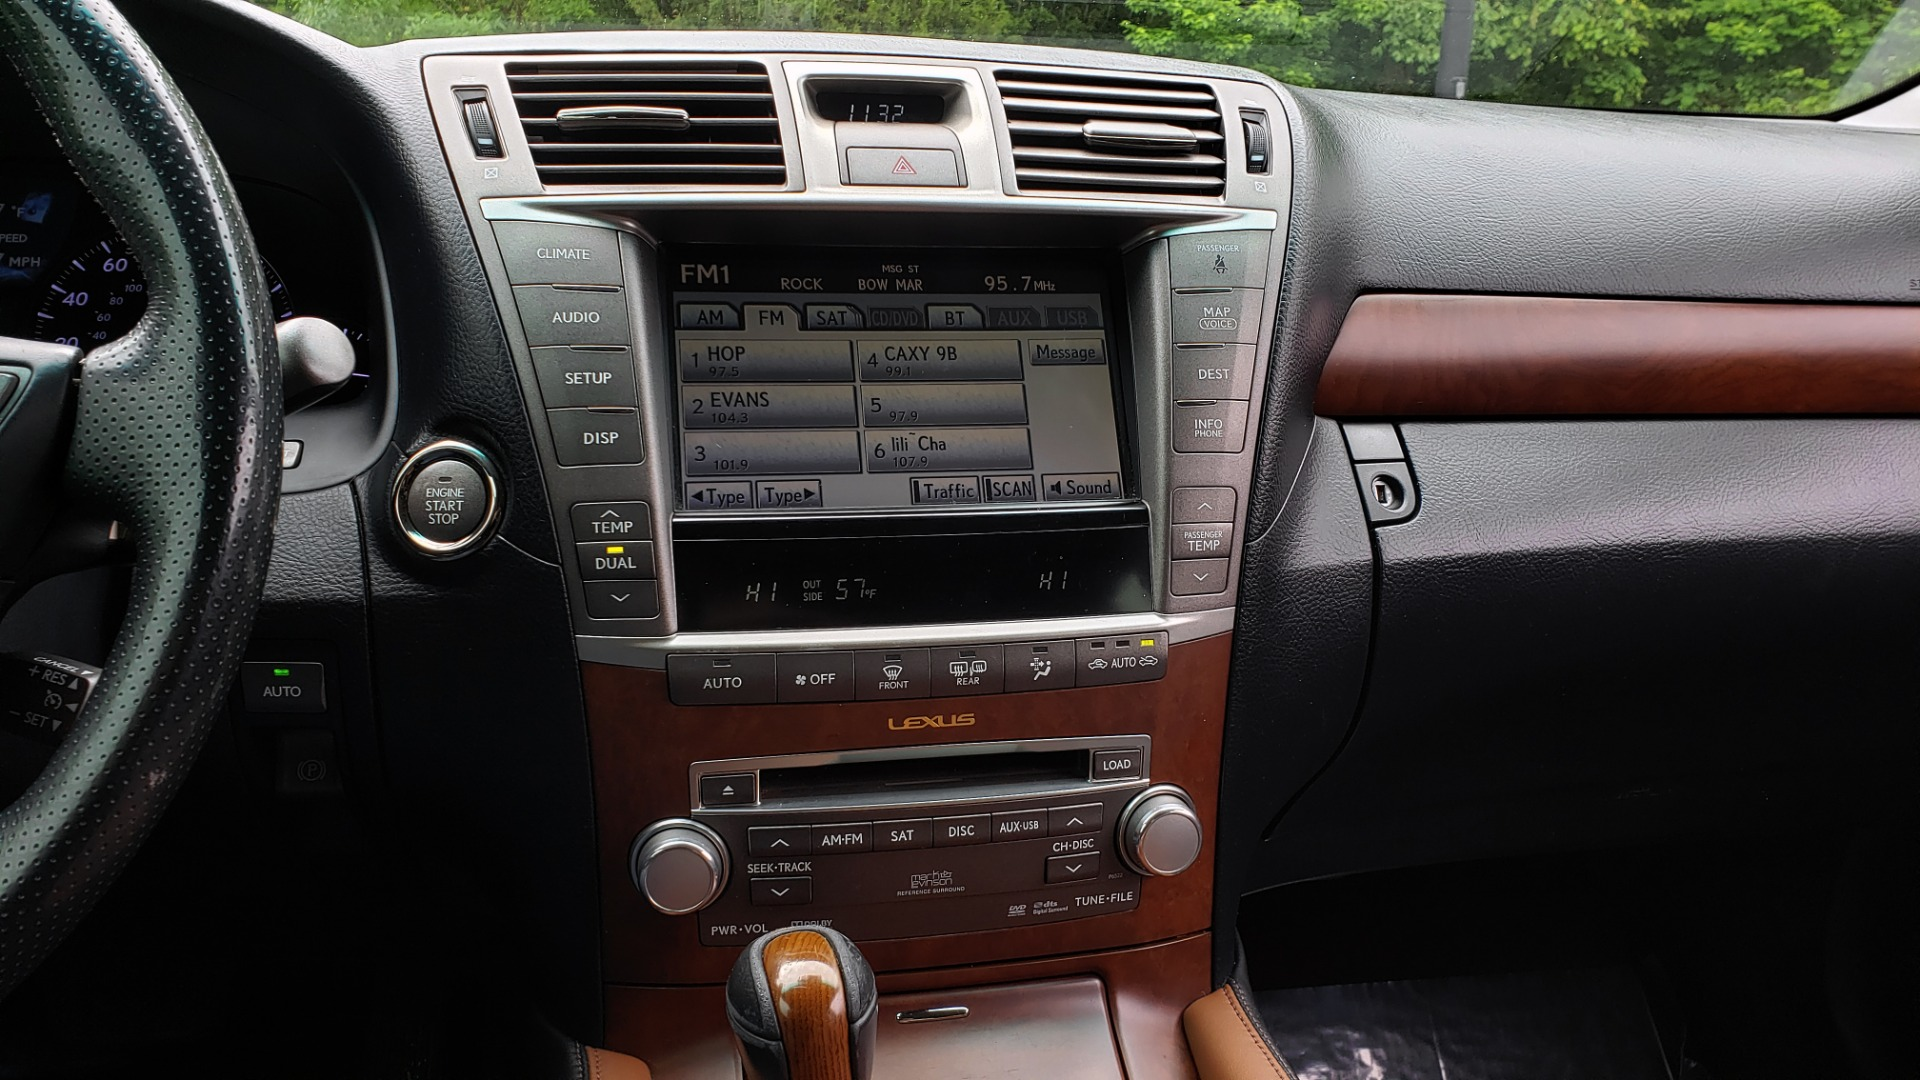 Used 2012 Lexus LS 460 COMFORT W/SPORT / VENT SEATS / NAV / MARK LEV SND / SUNROOF for sale Sold at Formula Imports in Charlotte NC 28227 41